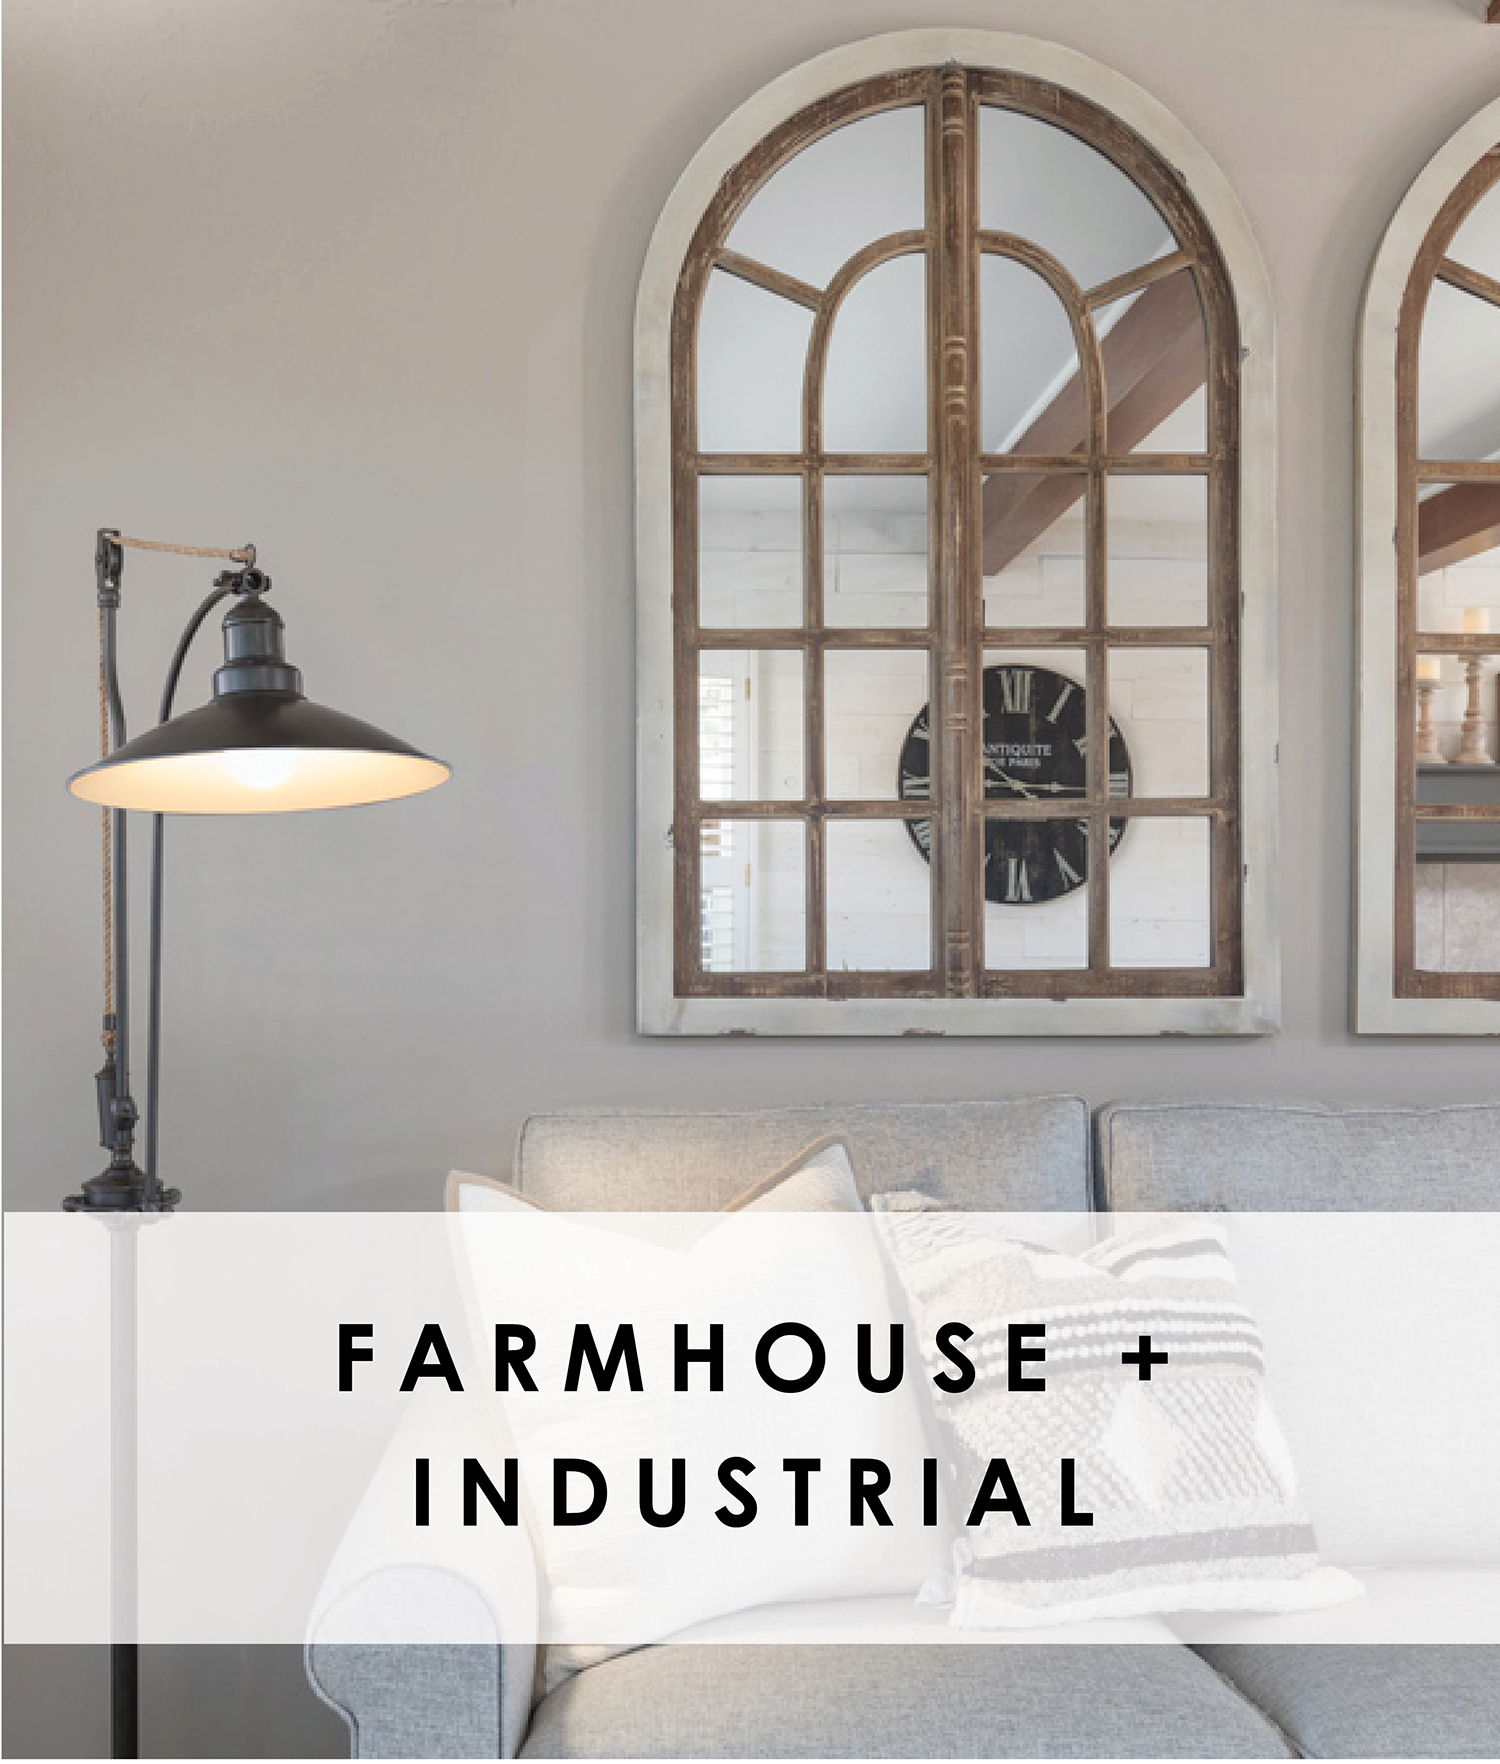 Farmhouse Industrial.jpg